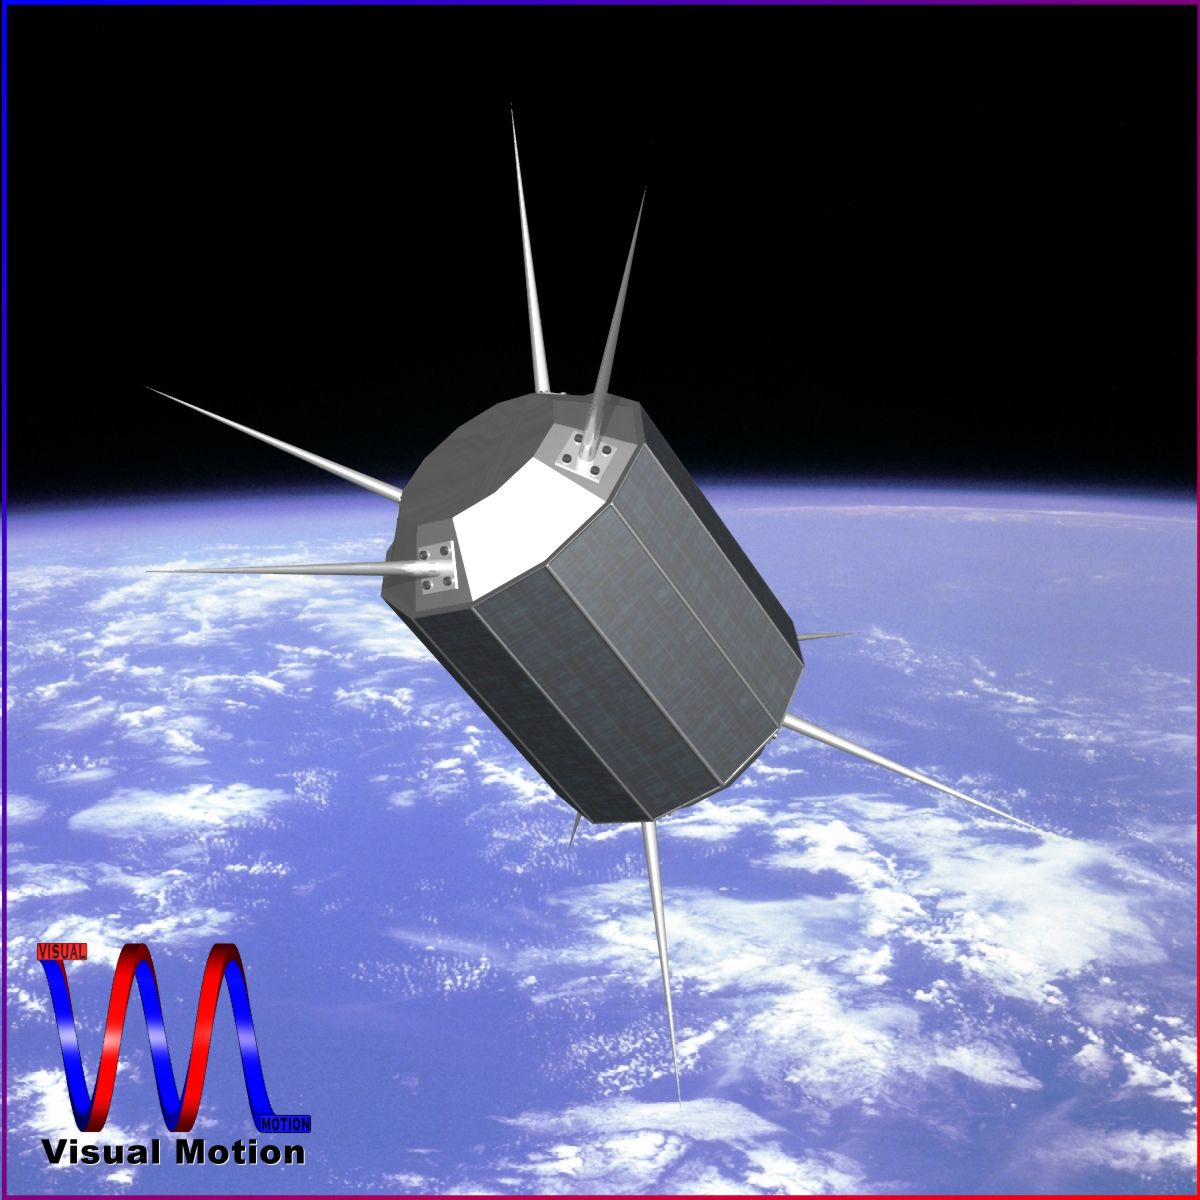 us uhf satellite 3d model 3ds dxf fbx blend dae x cod scn obj 149543